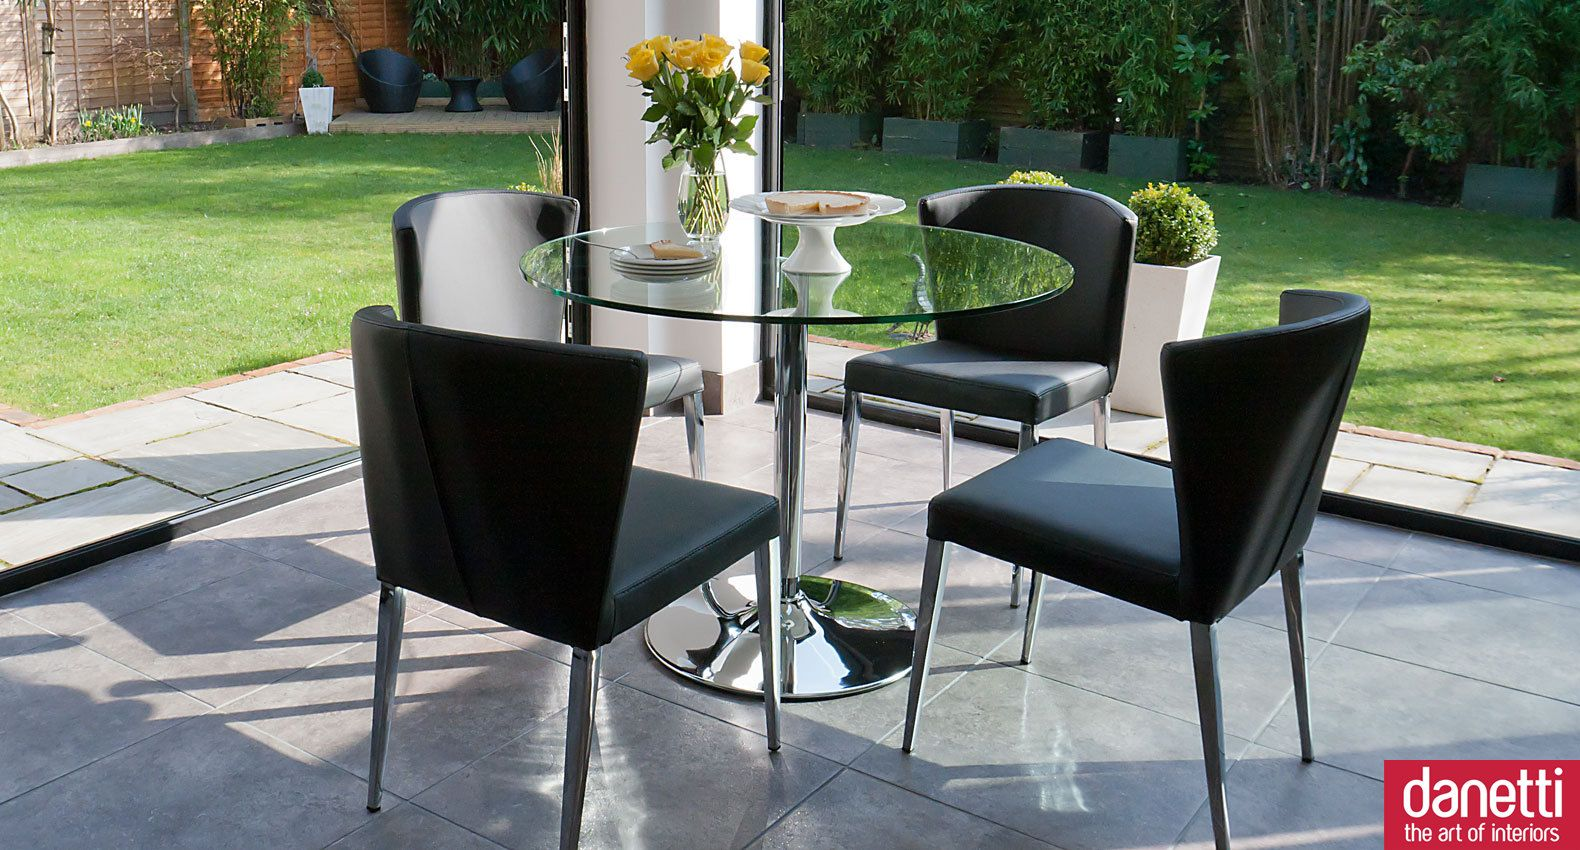 Naro clear glass and curva seater dining set dining sets glass